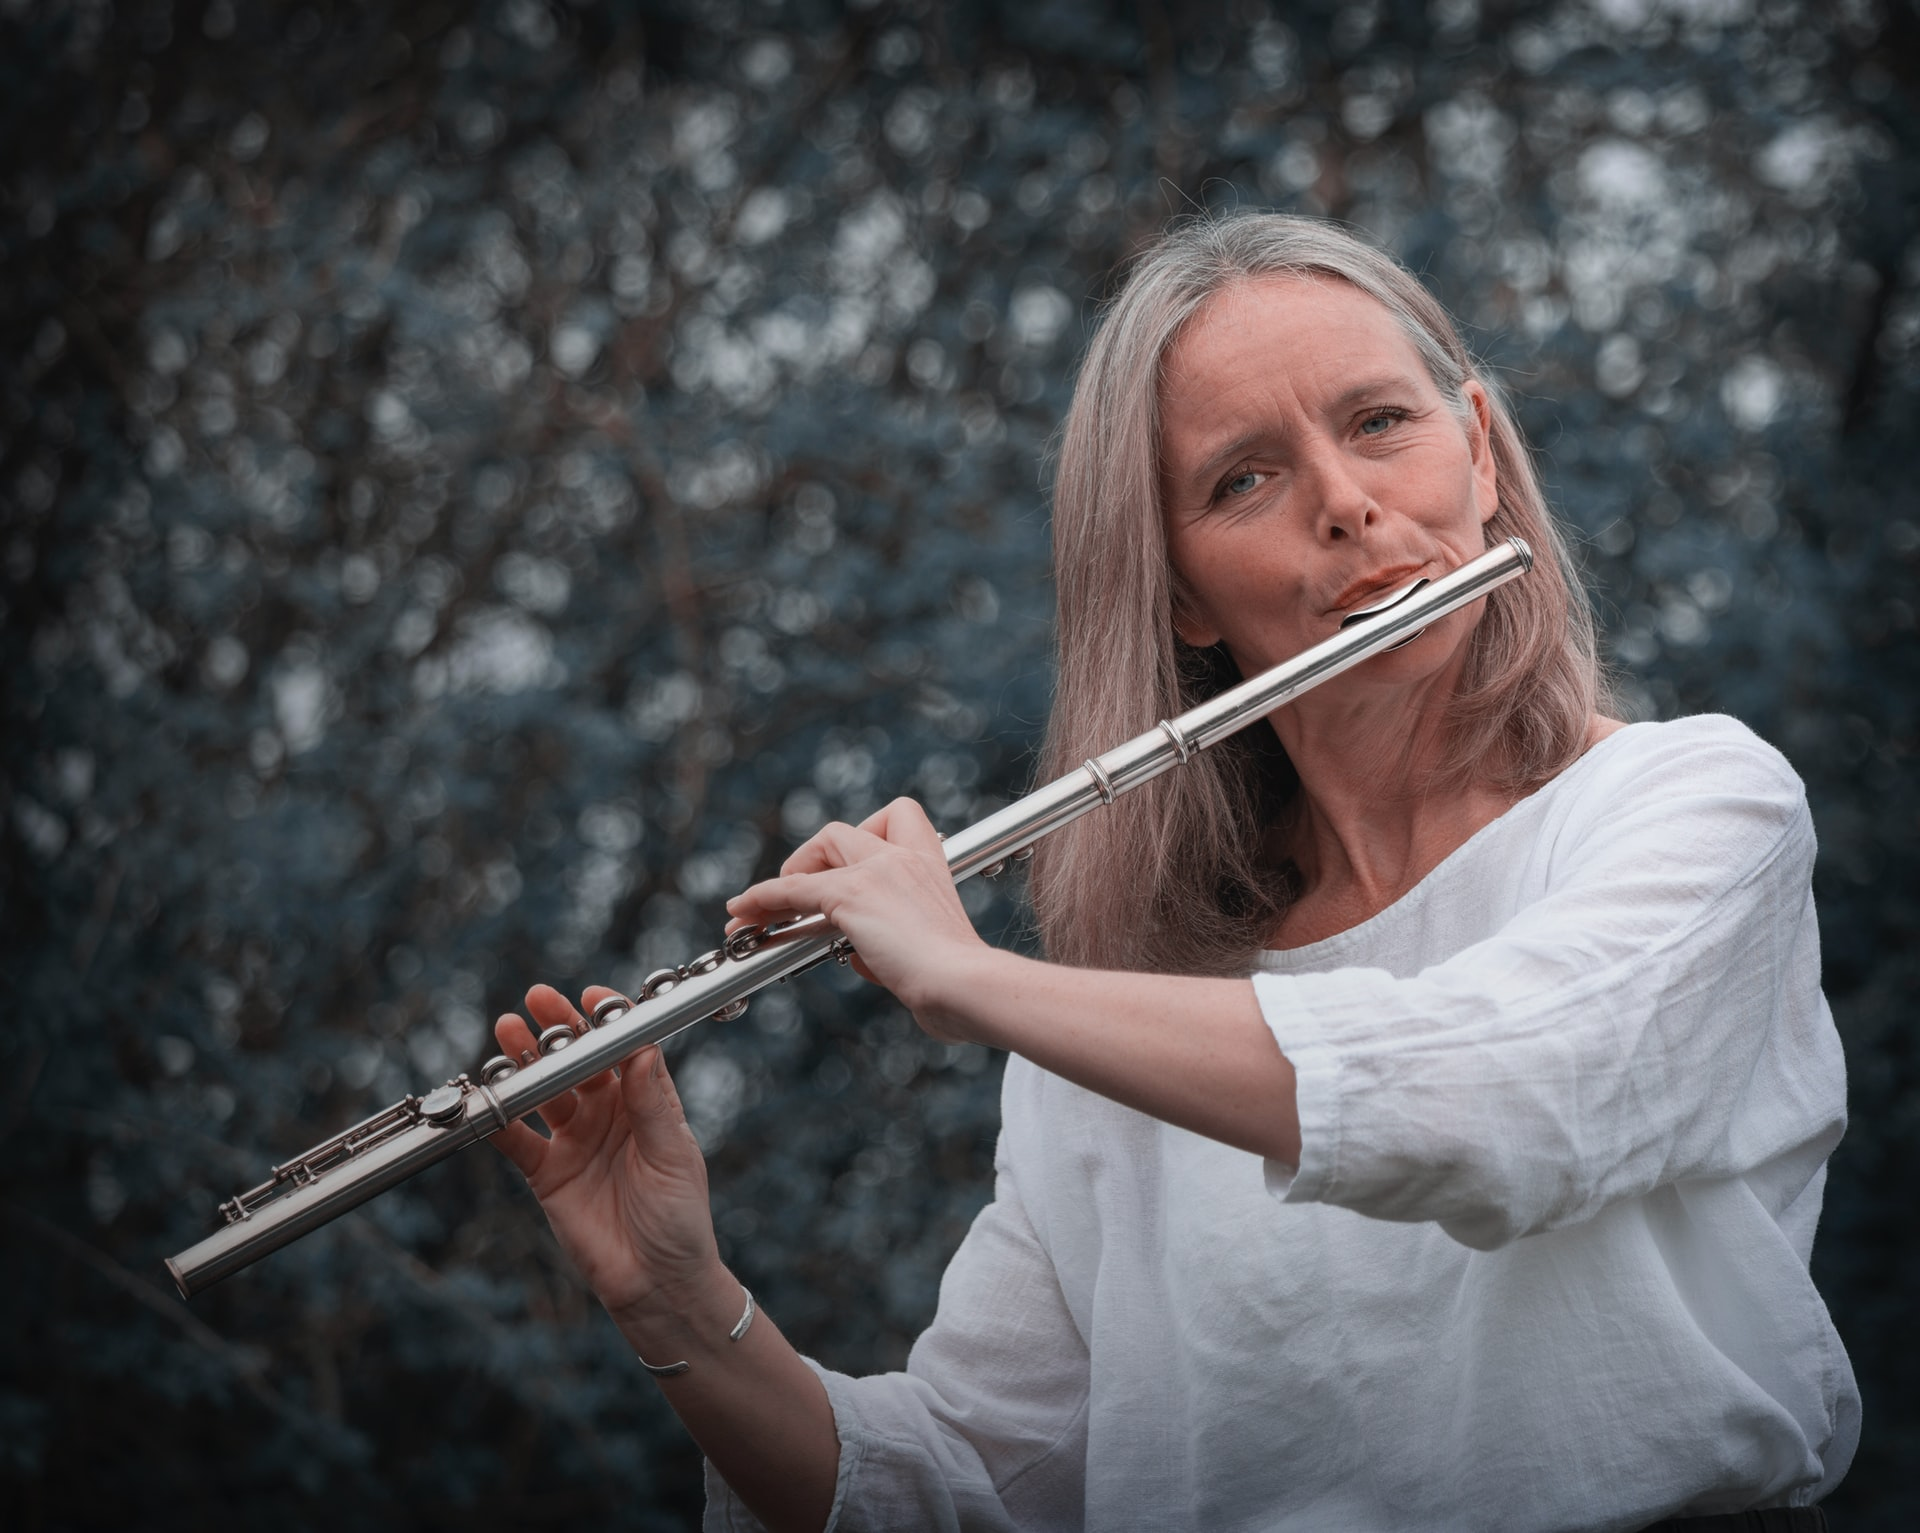 Can I Learn Flute by Myself?